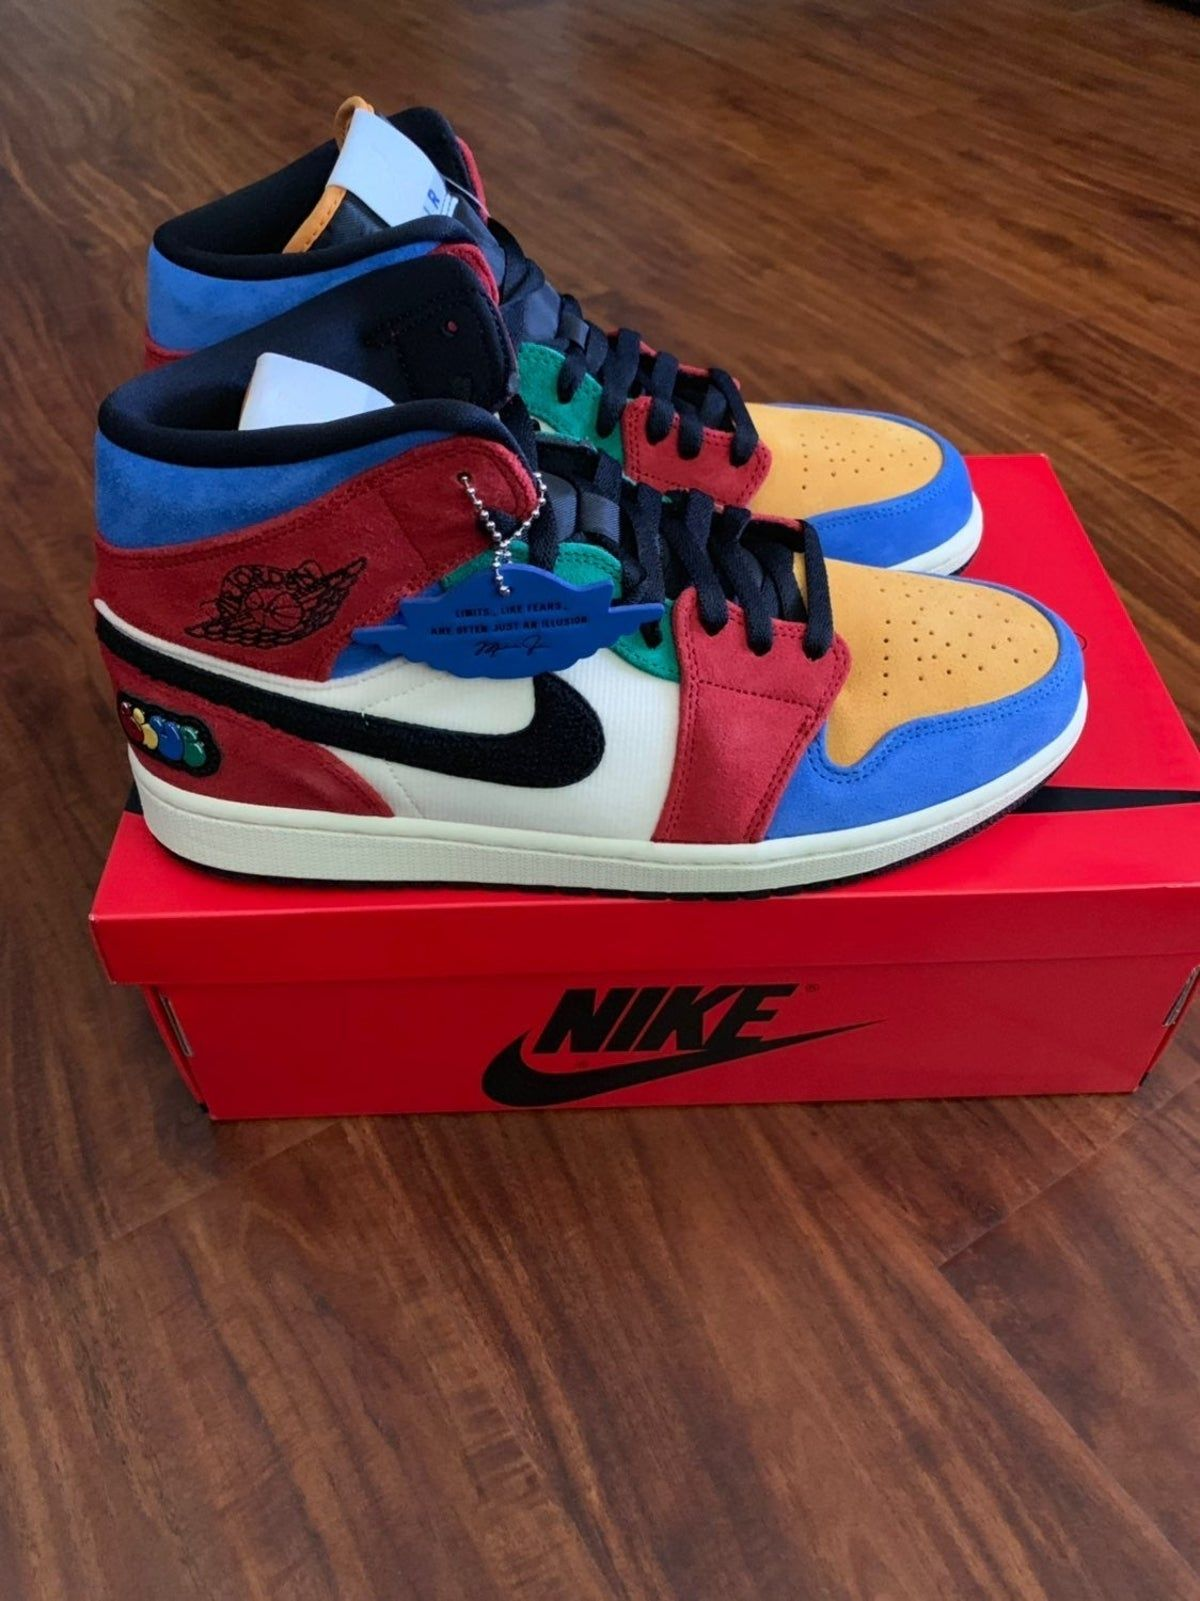 Pin By Wr Thed B L St On Kicks In 2020 Shoes Sneakers Jordans